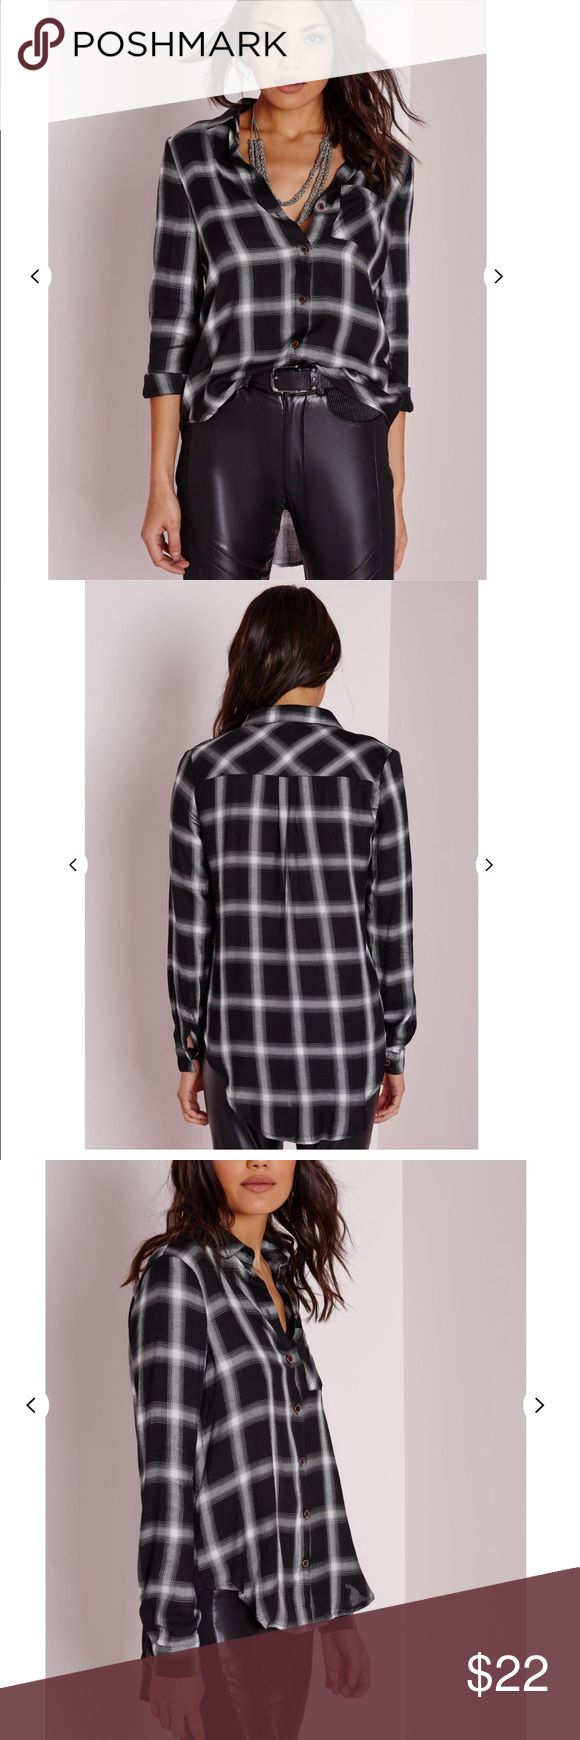 Missguided Black and White Plaid Button Up Shirt Black/grey/white plaid with a front pocket. Wooden buttons. It's a high-low shirt, higher in the front, longer in the back. 100% cotton Missguided Tops Button Down Shirts